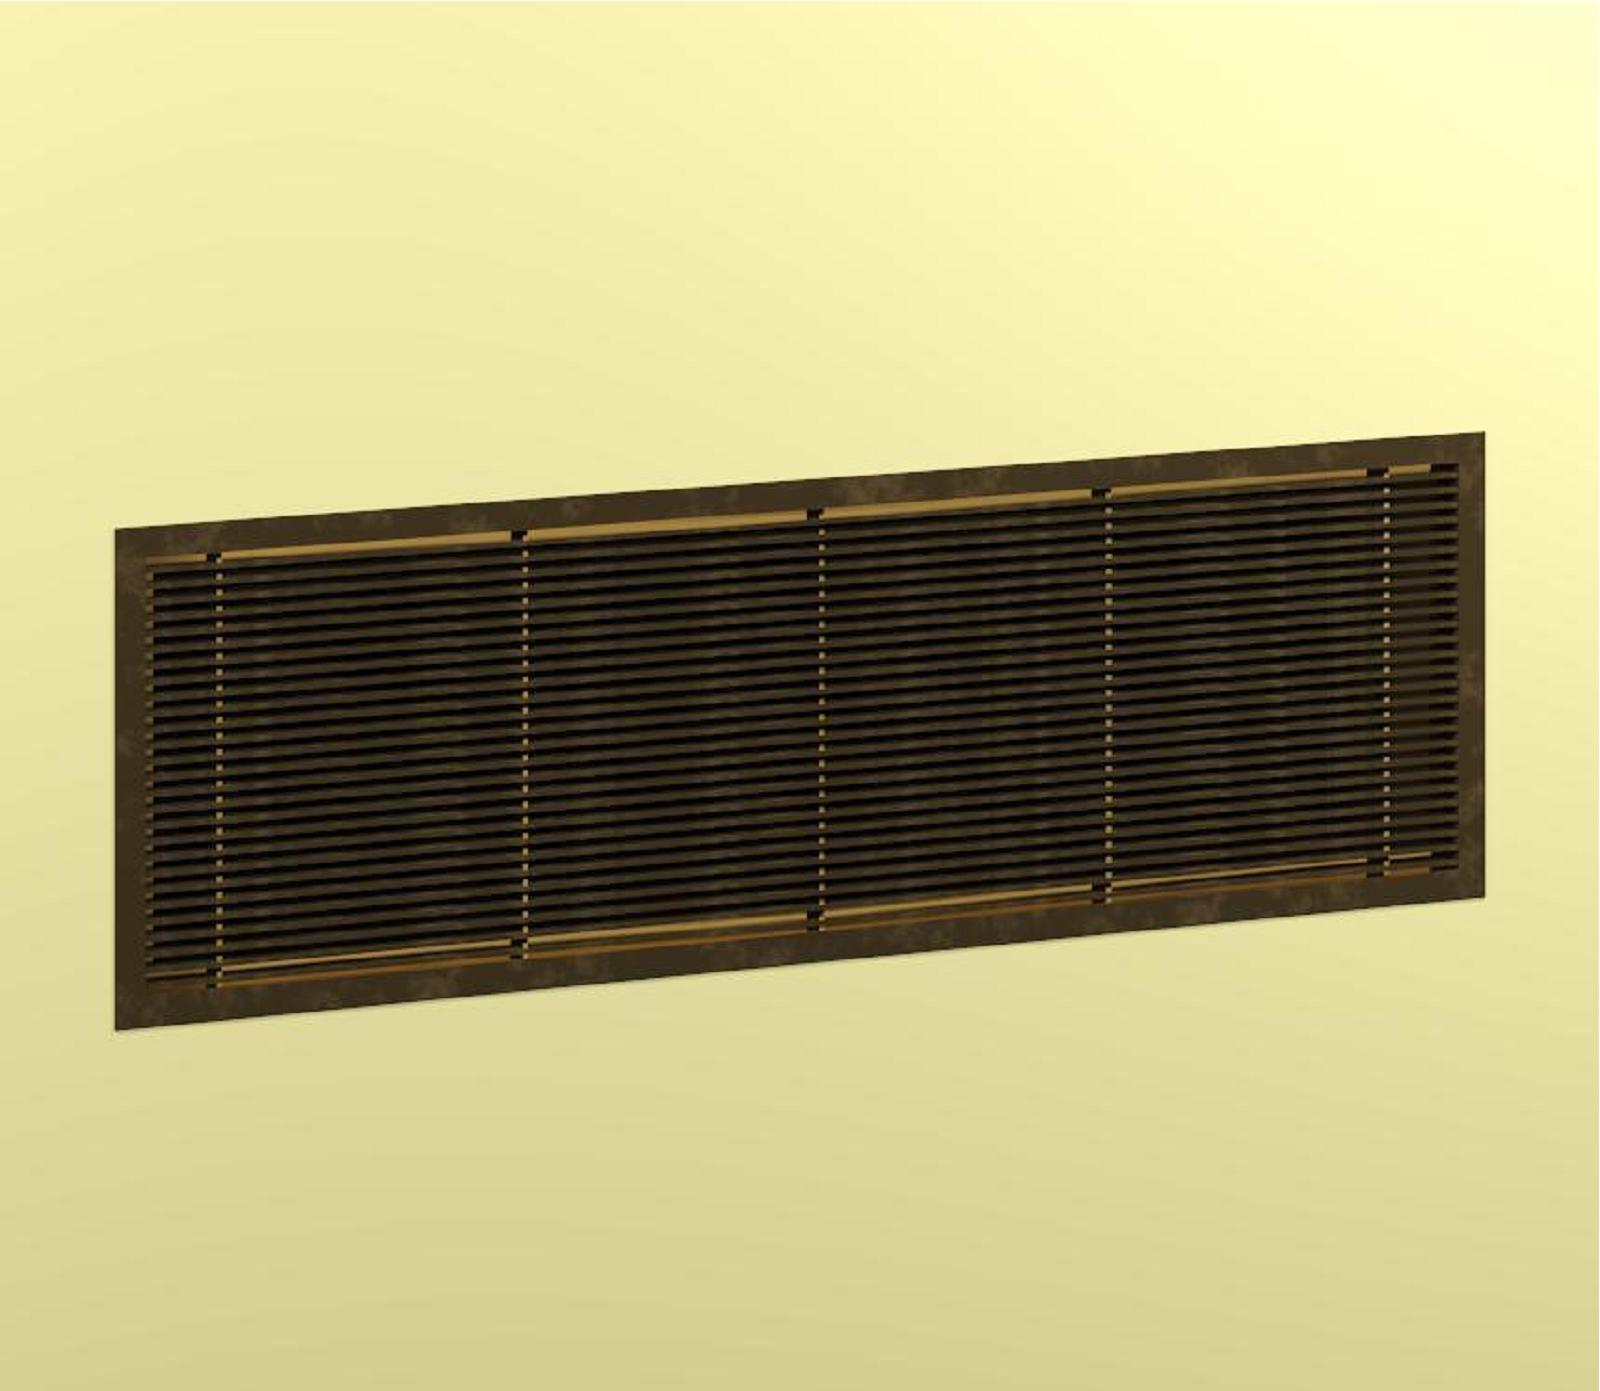 architectural grille decorative metal bim objects / families